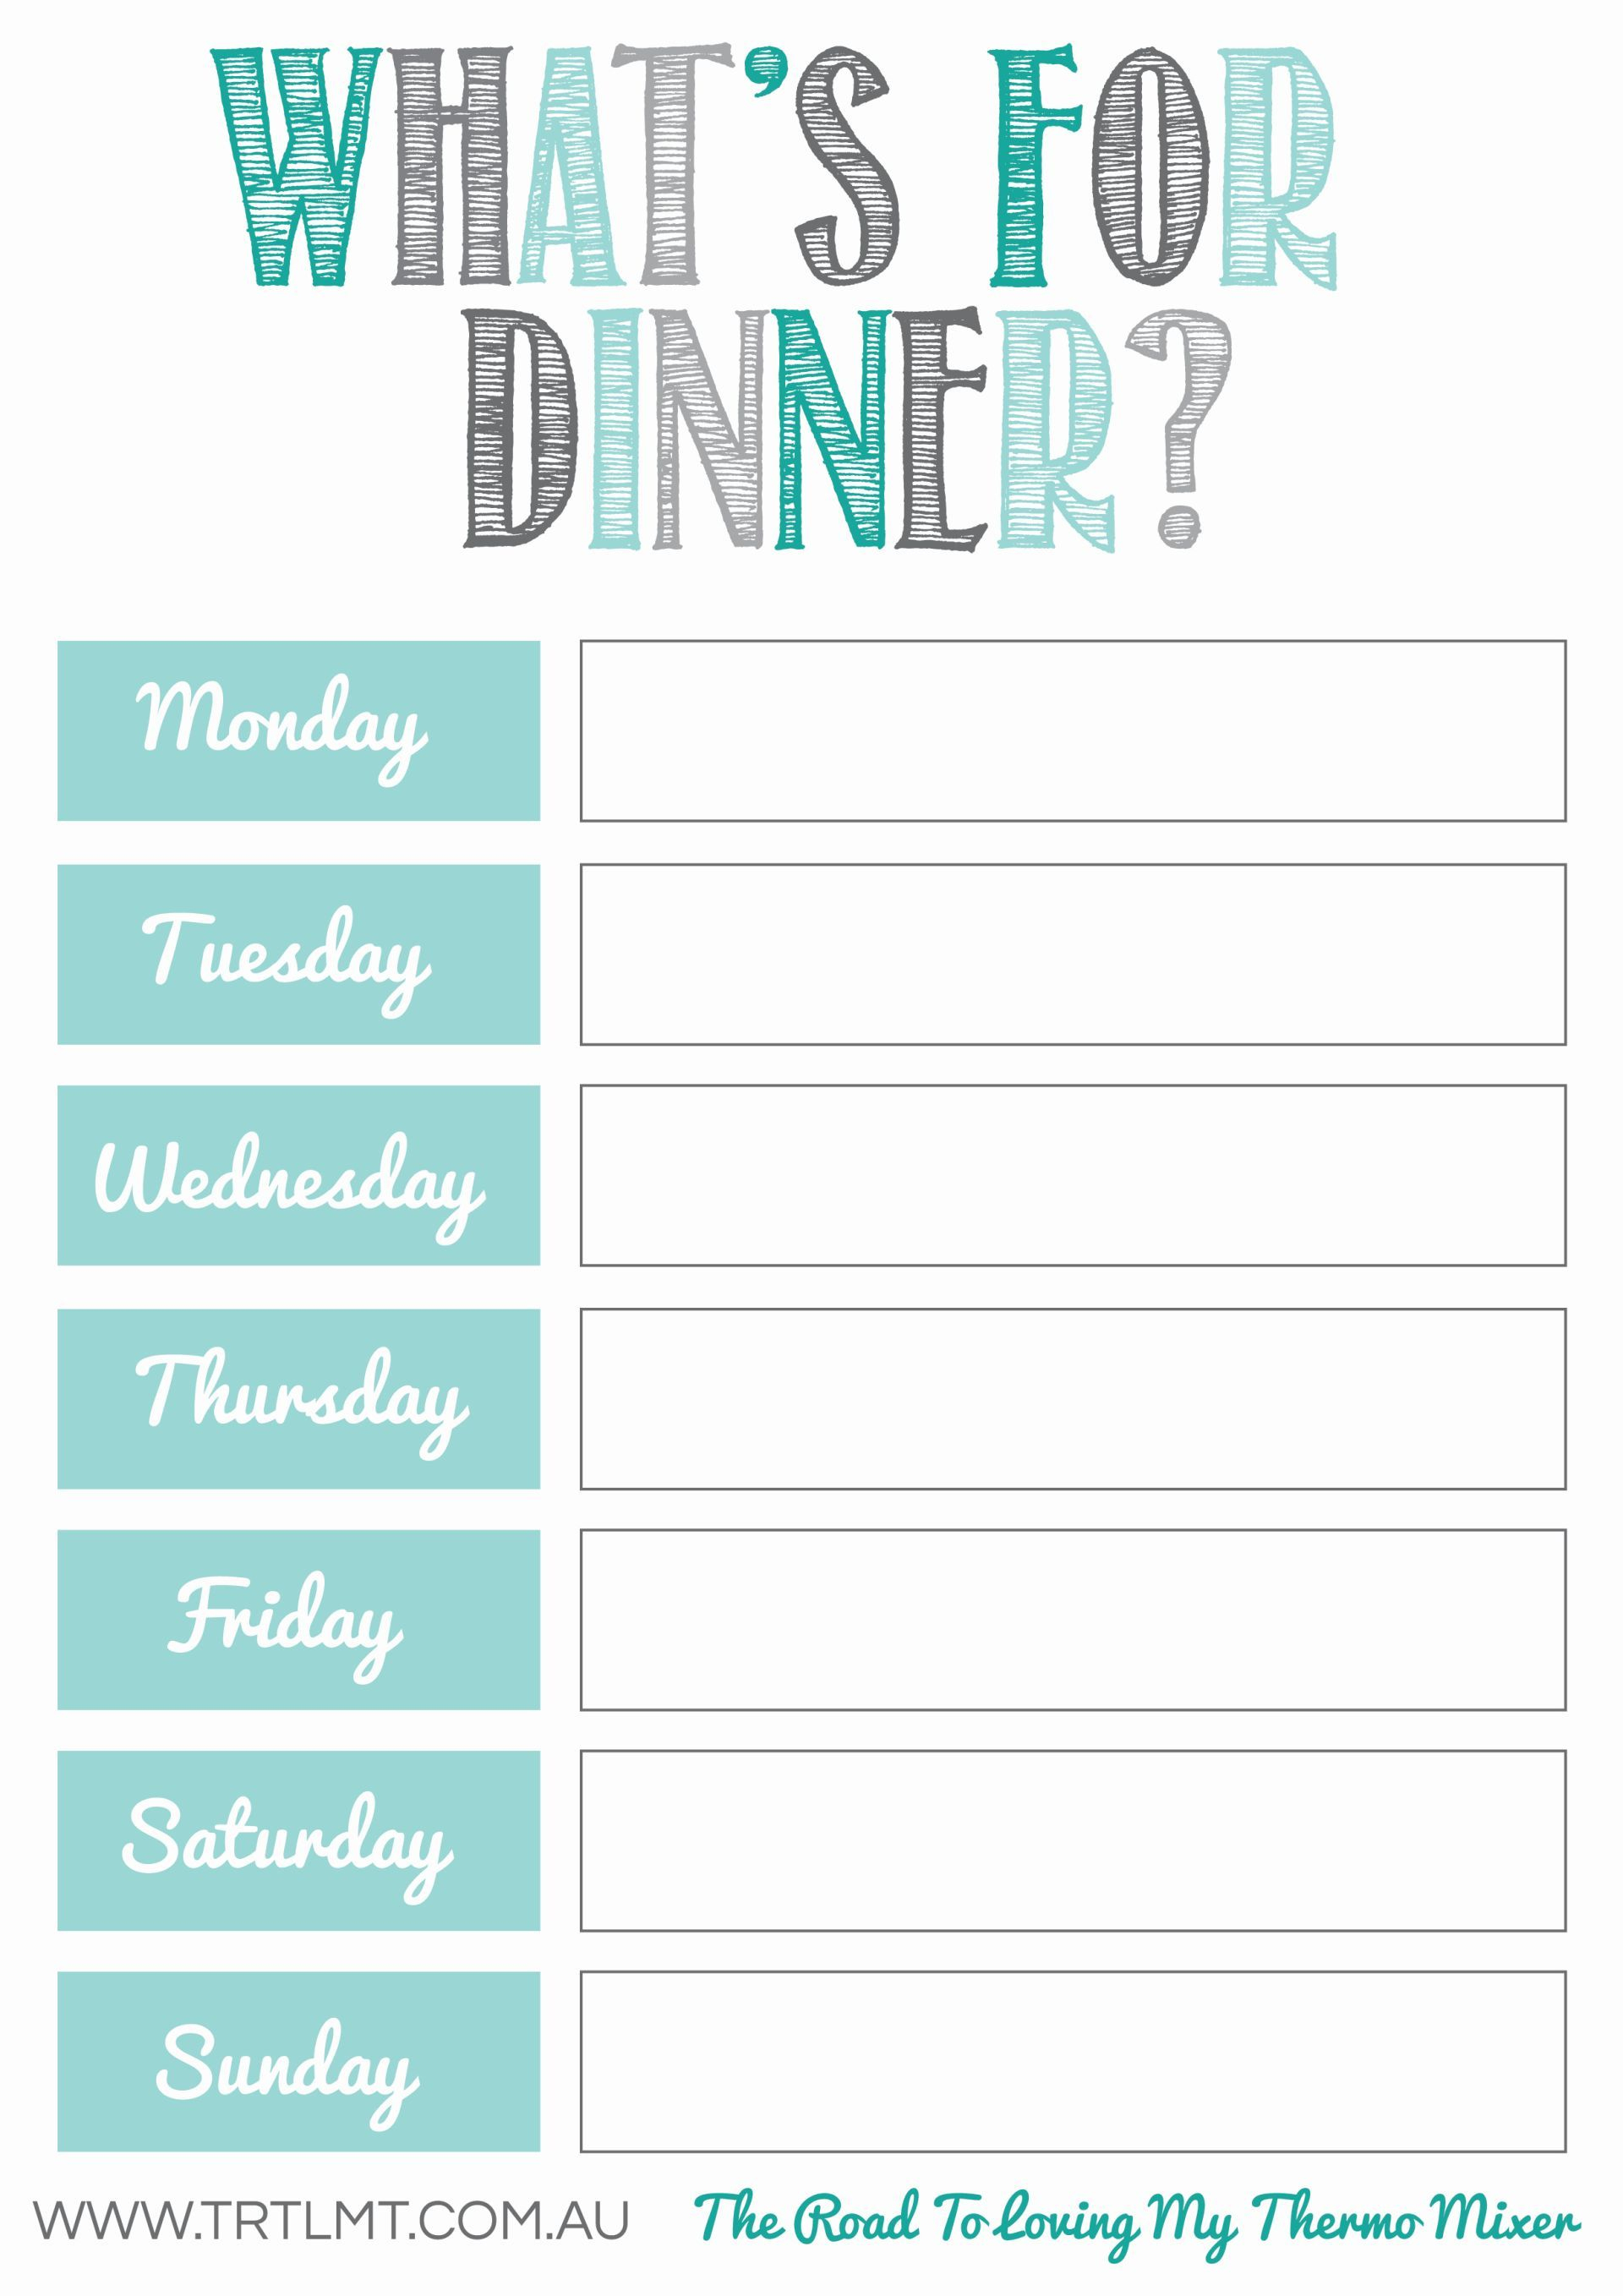 Free Meal Planning Printables | Food And Recipes | Pinterest - Free Printable Weekly Meal Planner